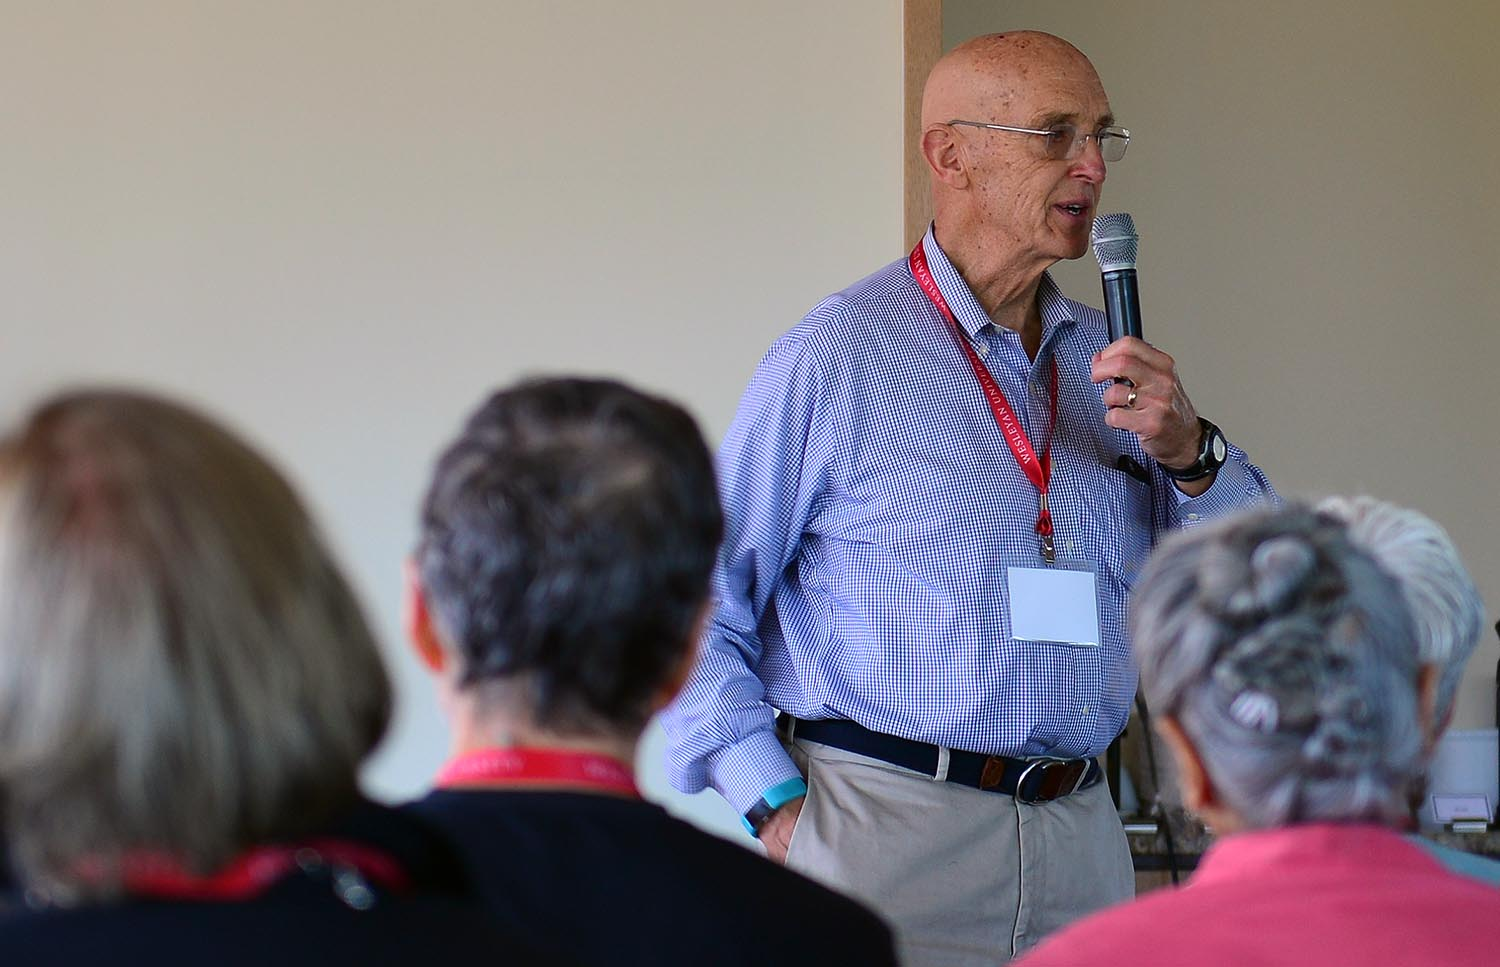 Professor of Psychology Emeritus Karl Scheibe convened the Saturday seminars with an exercise in sharing experiences that he had used in his Dramaturgical Approach to Psychology course.